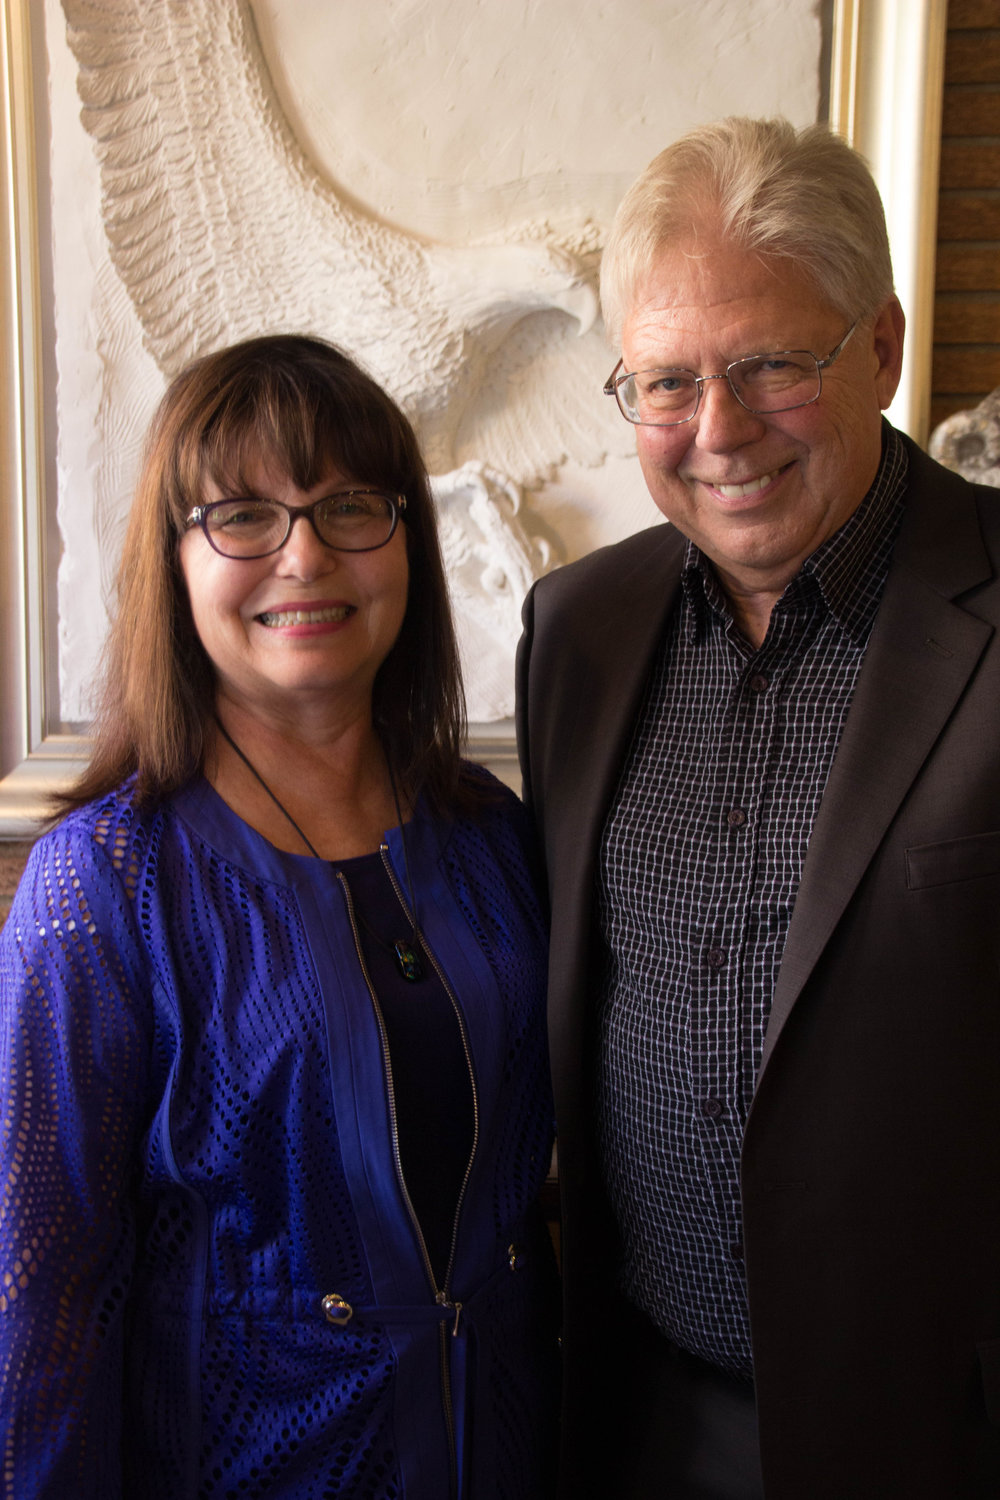 Deborah Benedic and Nelson McKinnon, owners of The Loft Fine Art